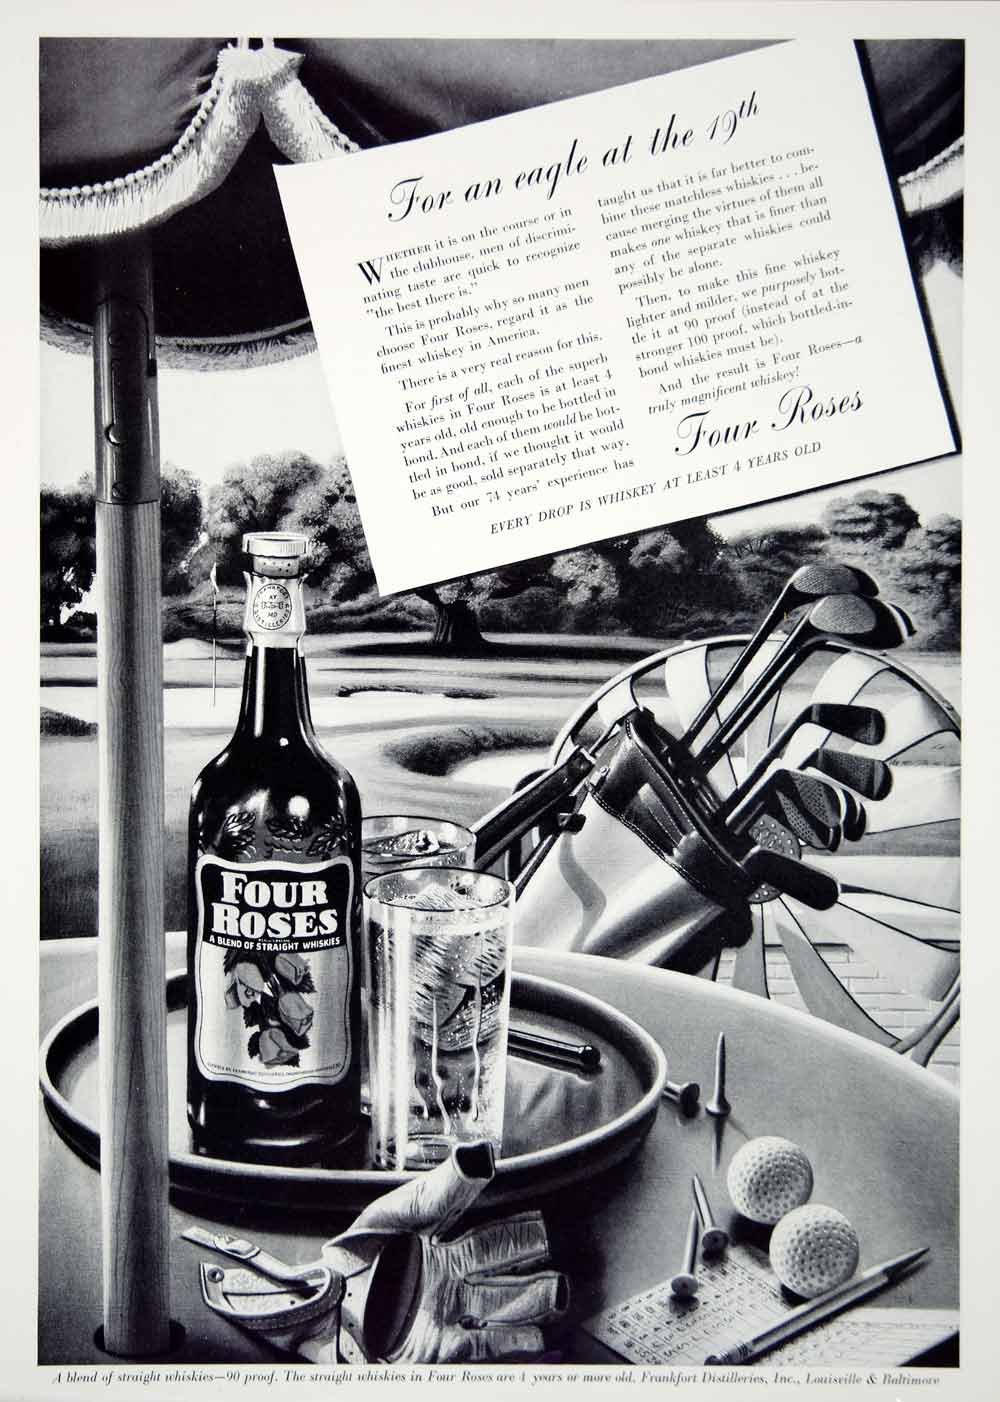 1939 Ad Vintage Four Roses Whiskey Golf Clubs Golfing 19th Hole Alcohol Whisky